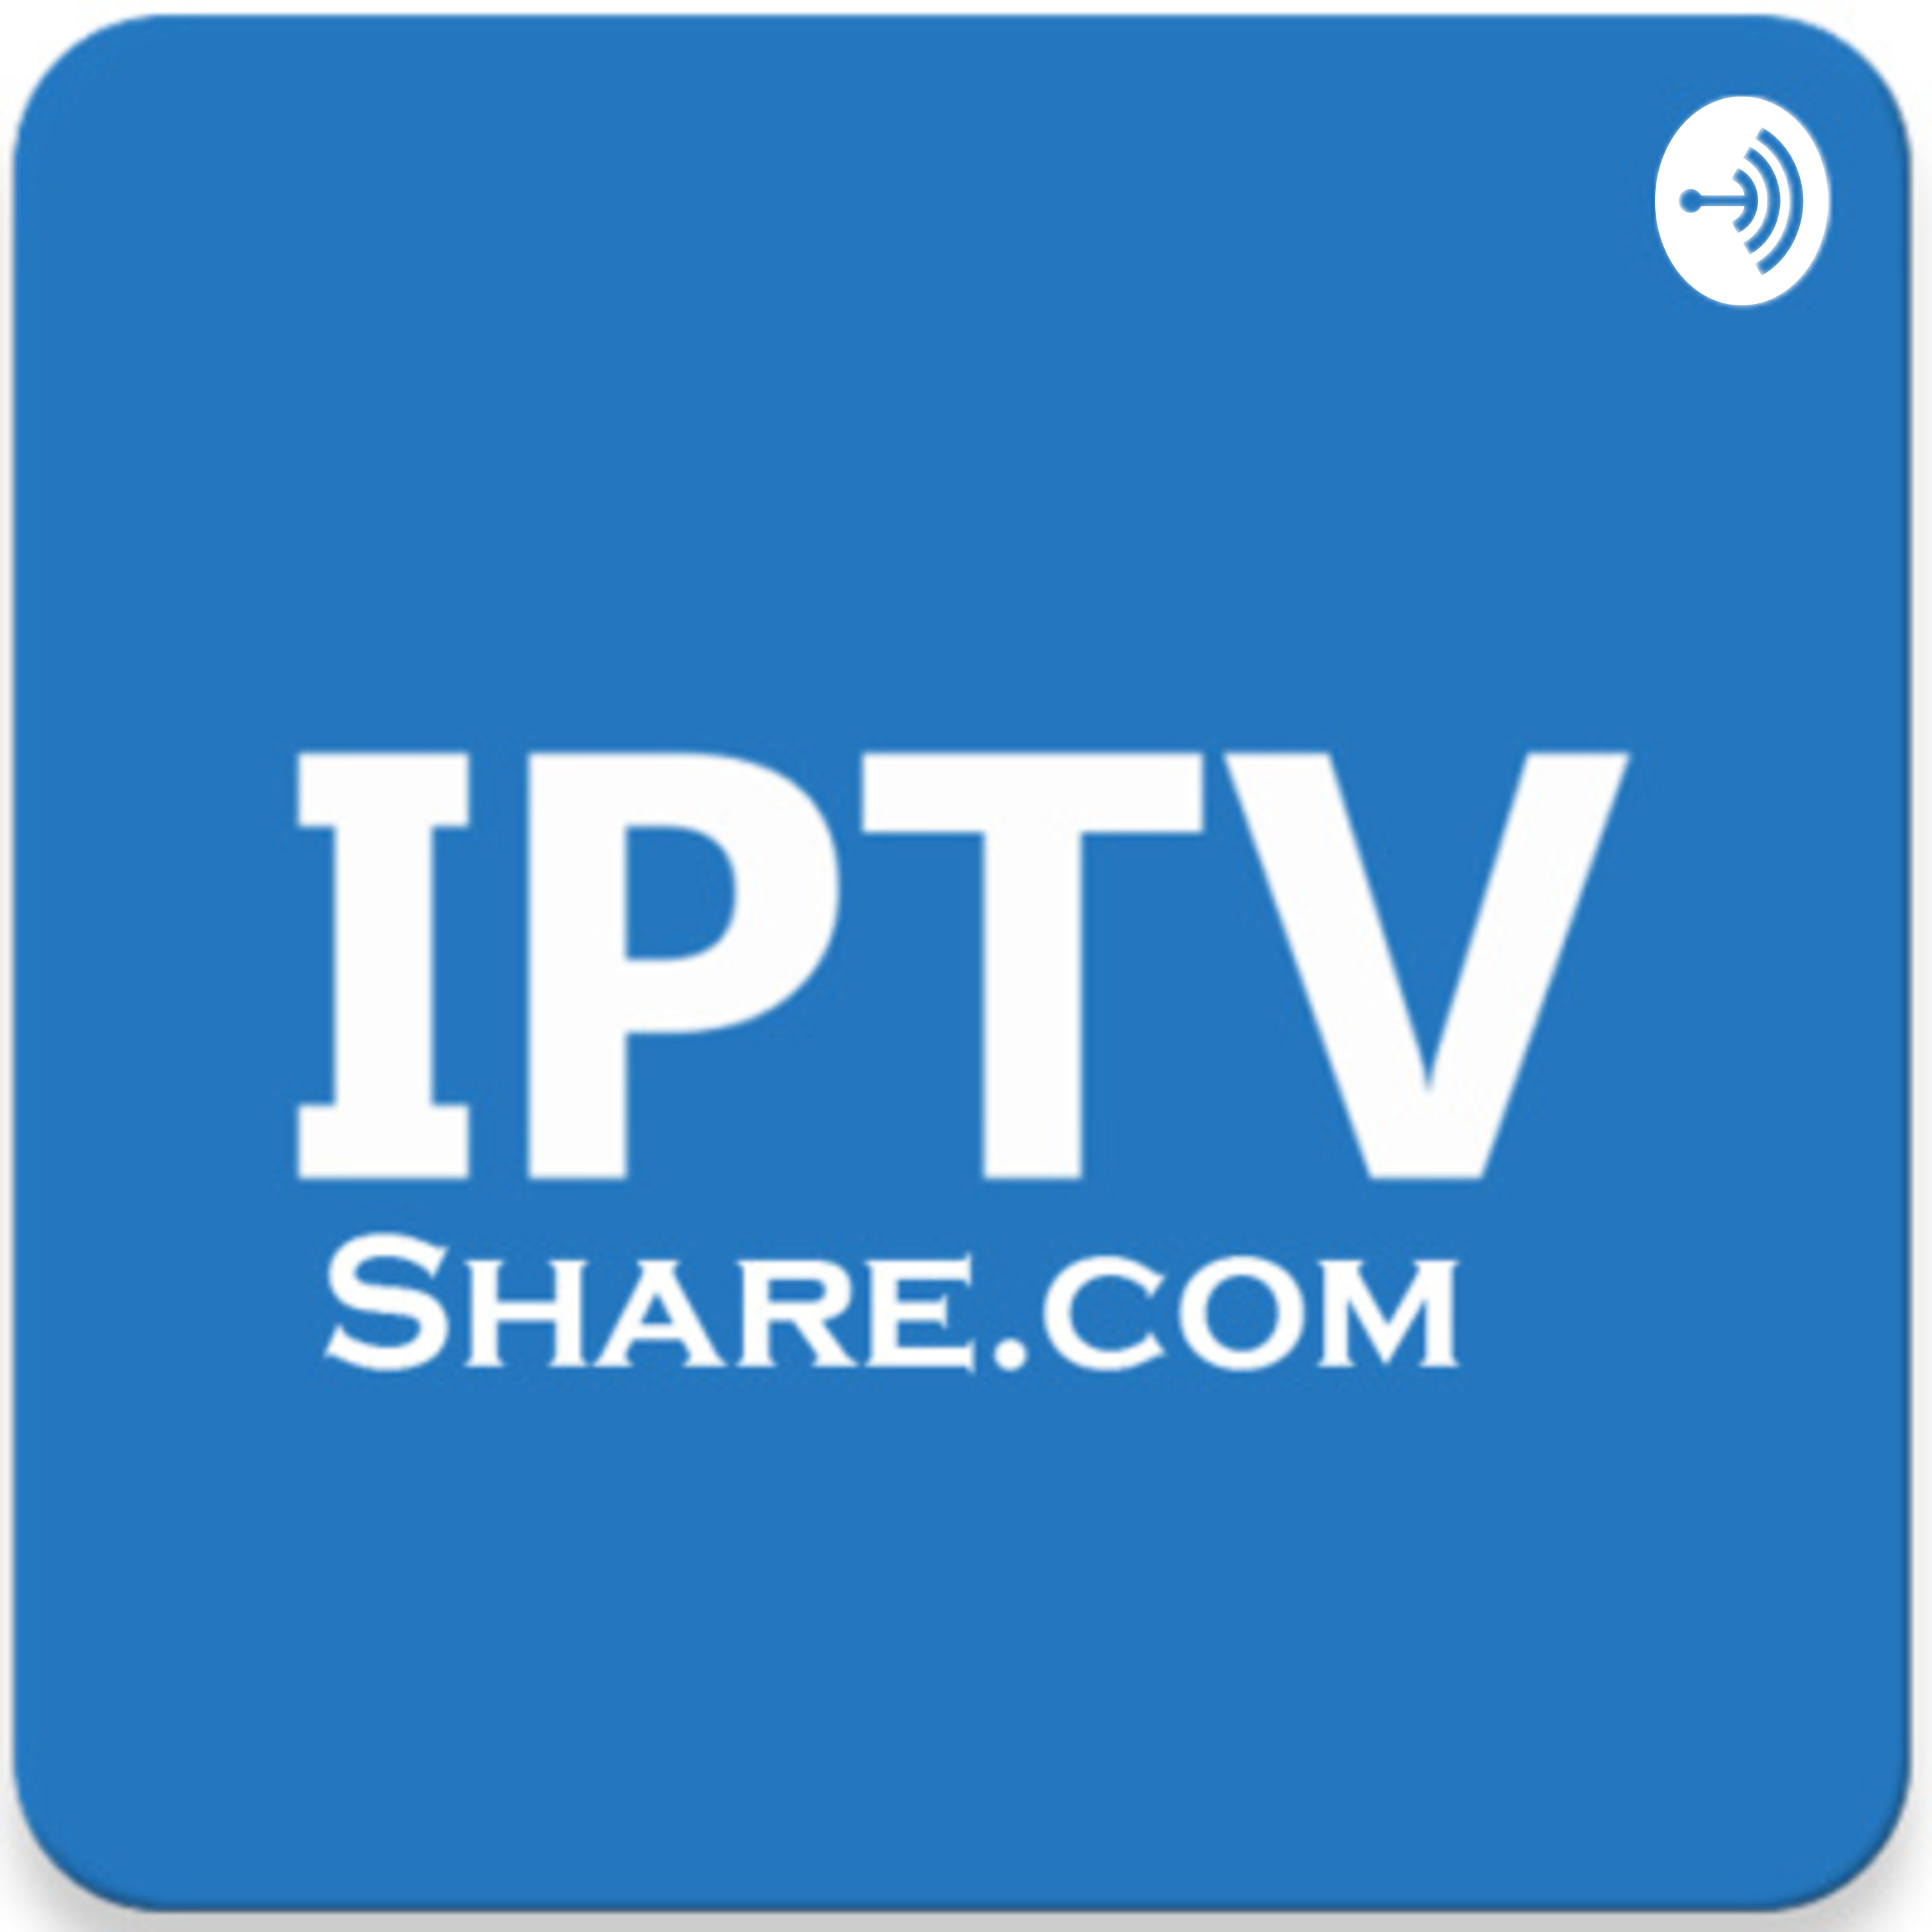 Apple Podcasts : Russia : TV & Film Podcast Charts - Chartable